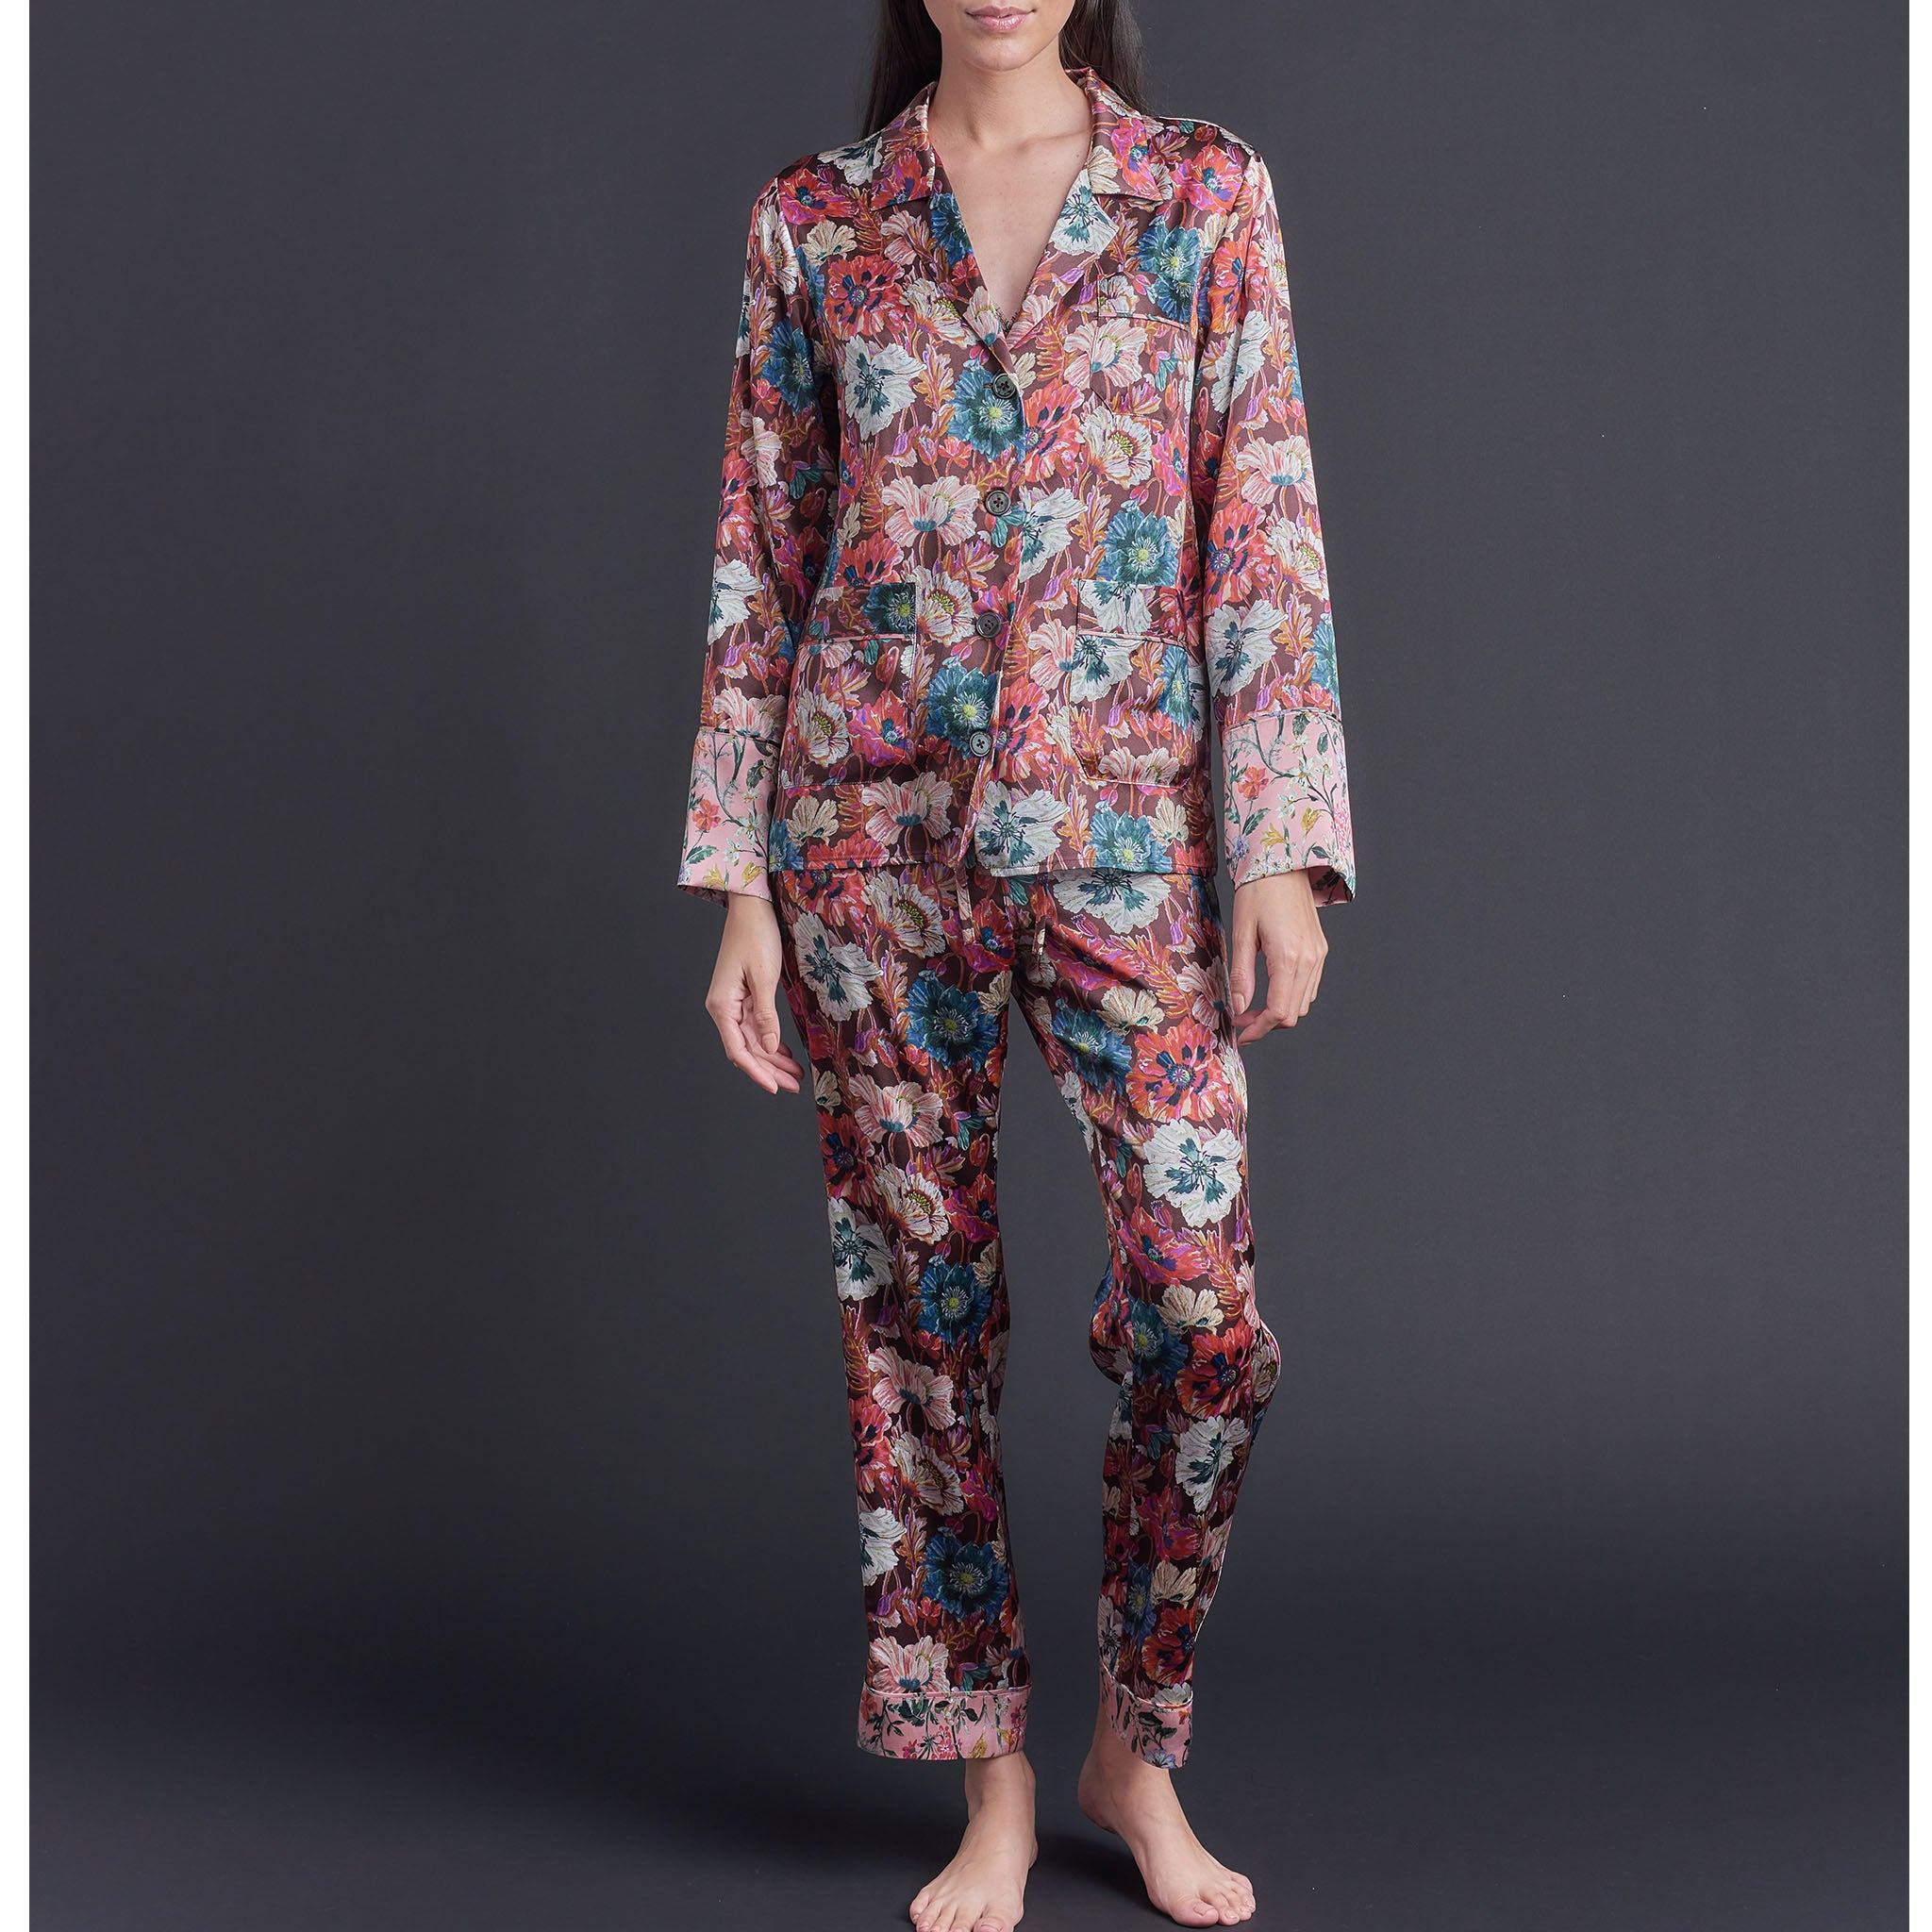 Annabel Pajama Top in Poppy Liberty Print Silk Charmeuse